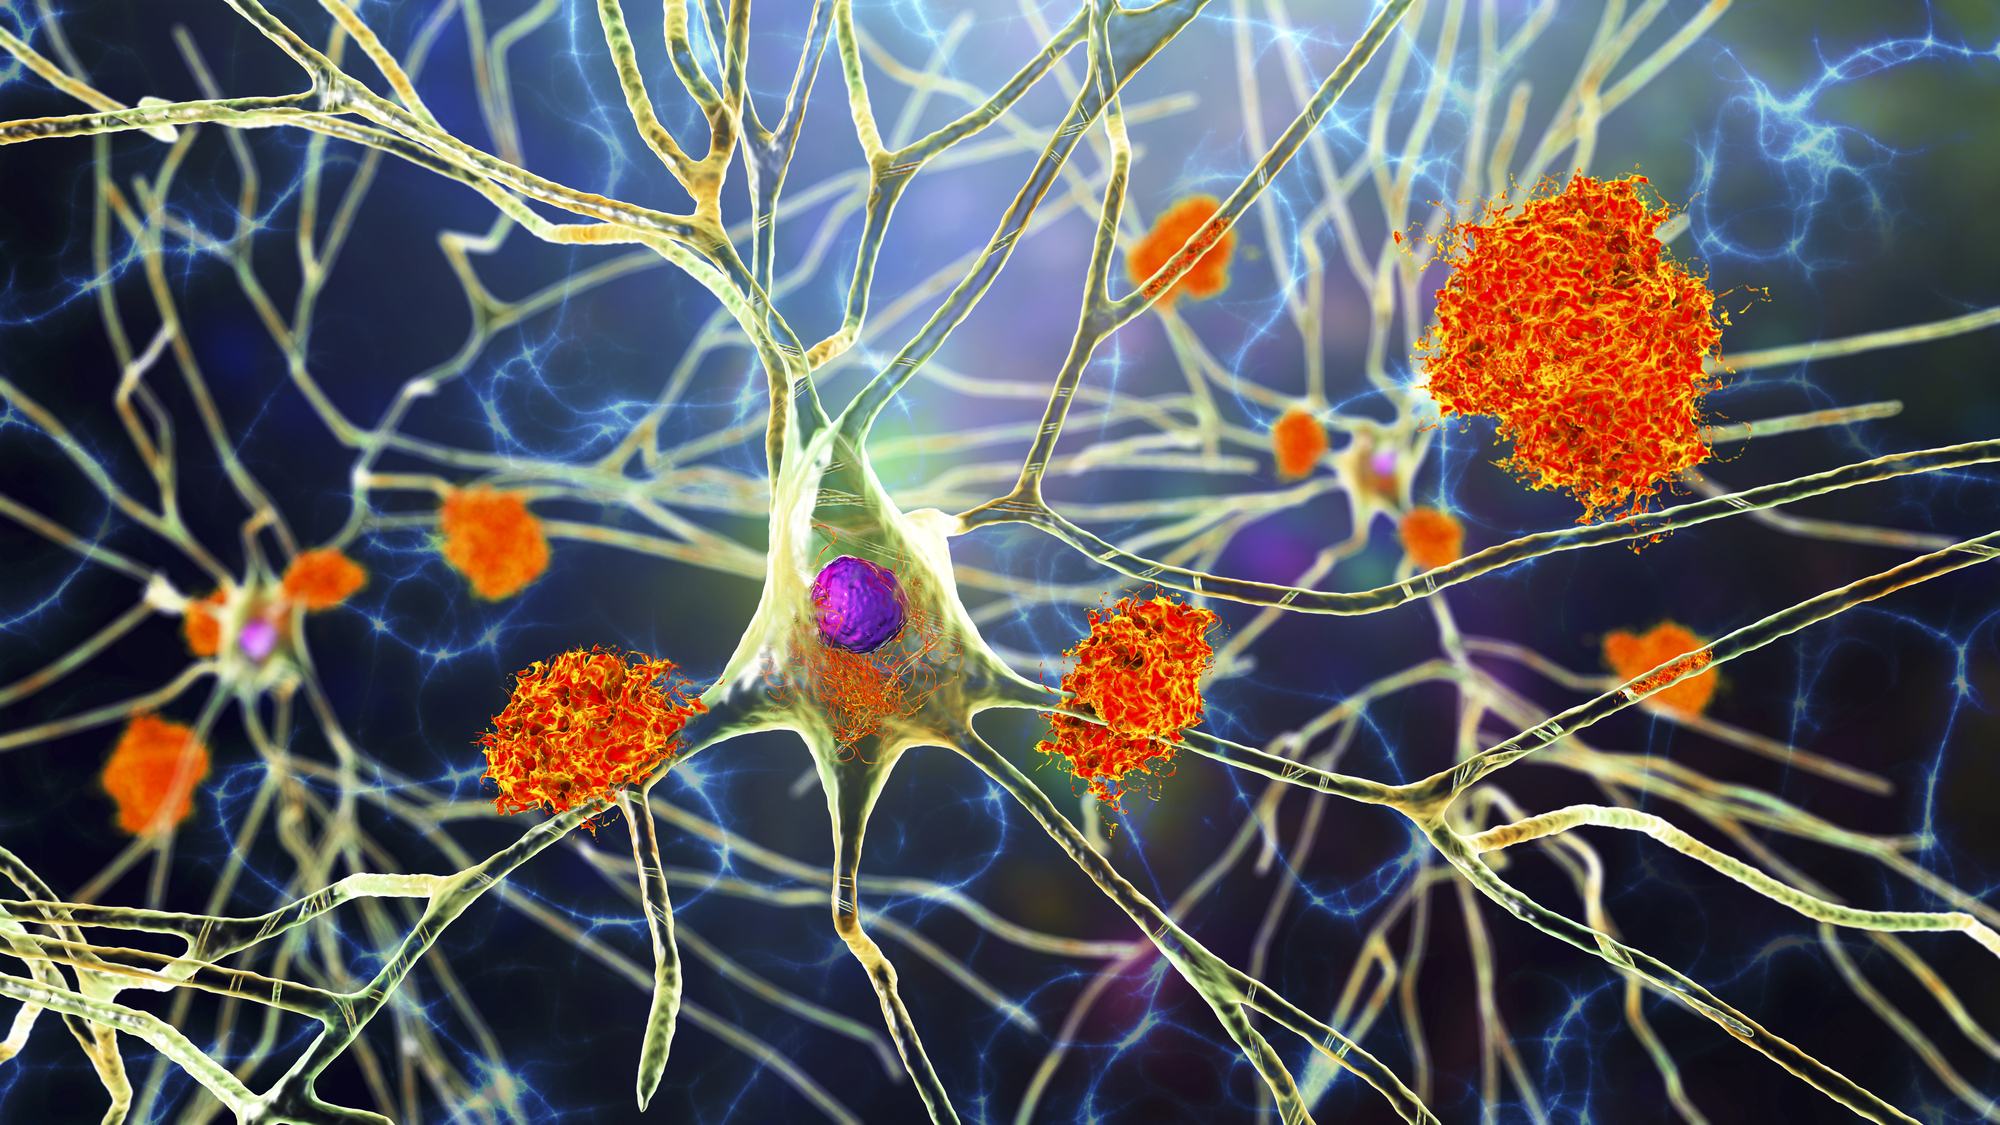 An artist's impression of amyloid plaques forming in the brain, which scientists hope to tackle as a way of treating Alzheimer's